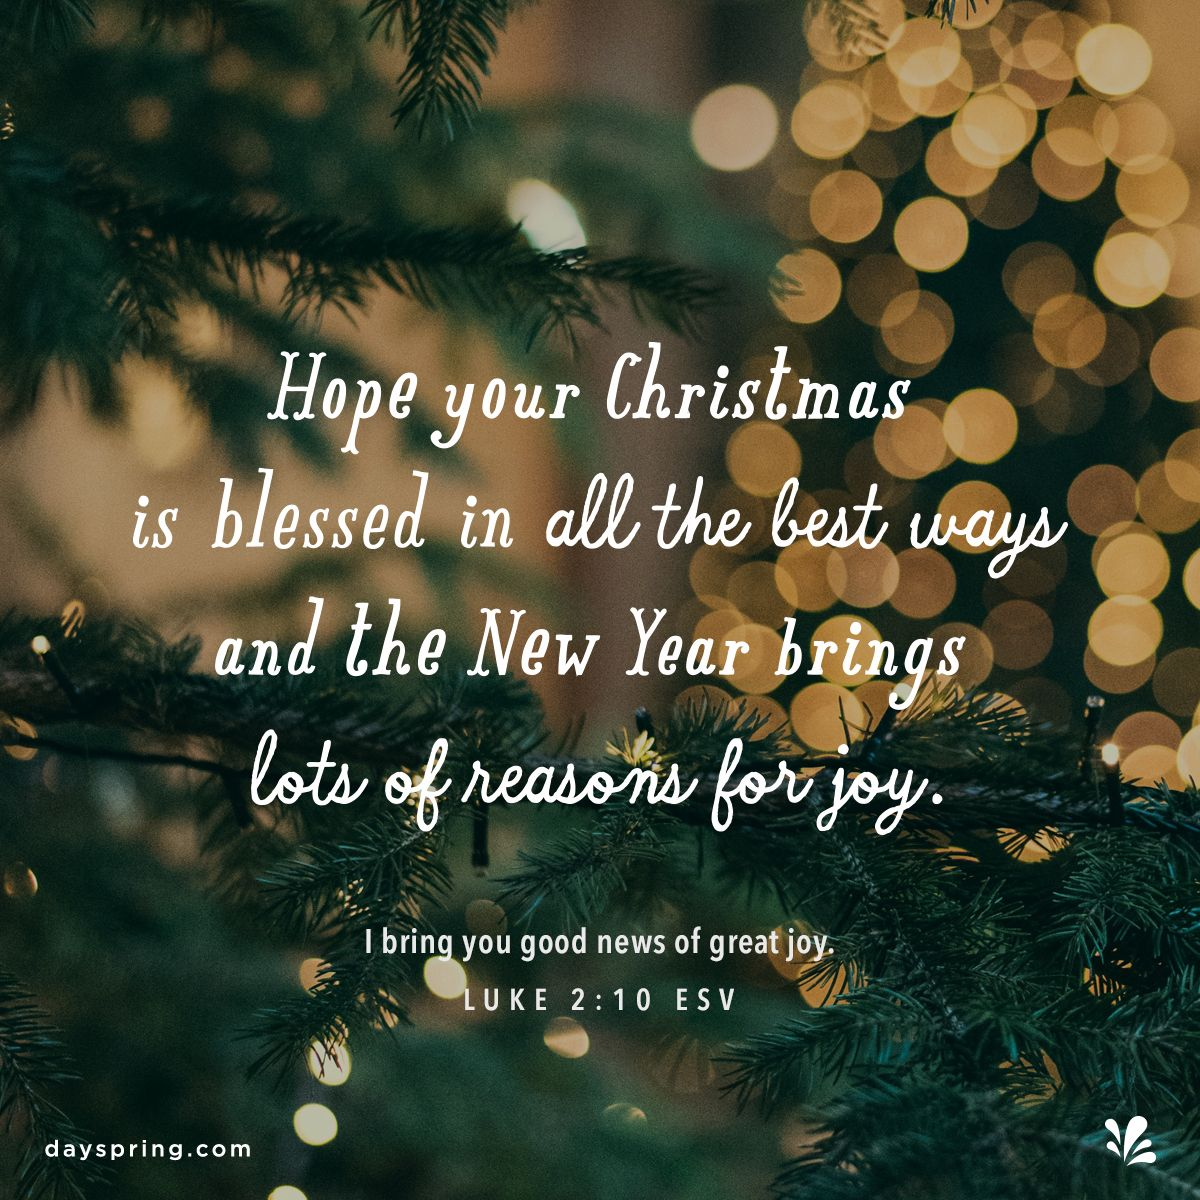 Reasons for Joy Christmas greetings quotes, Merry